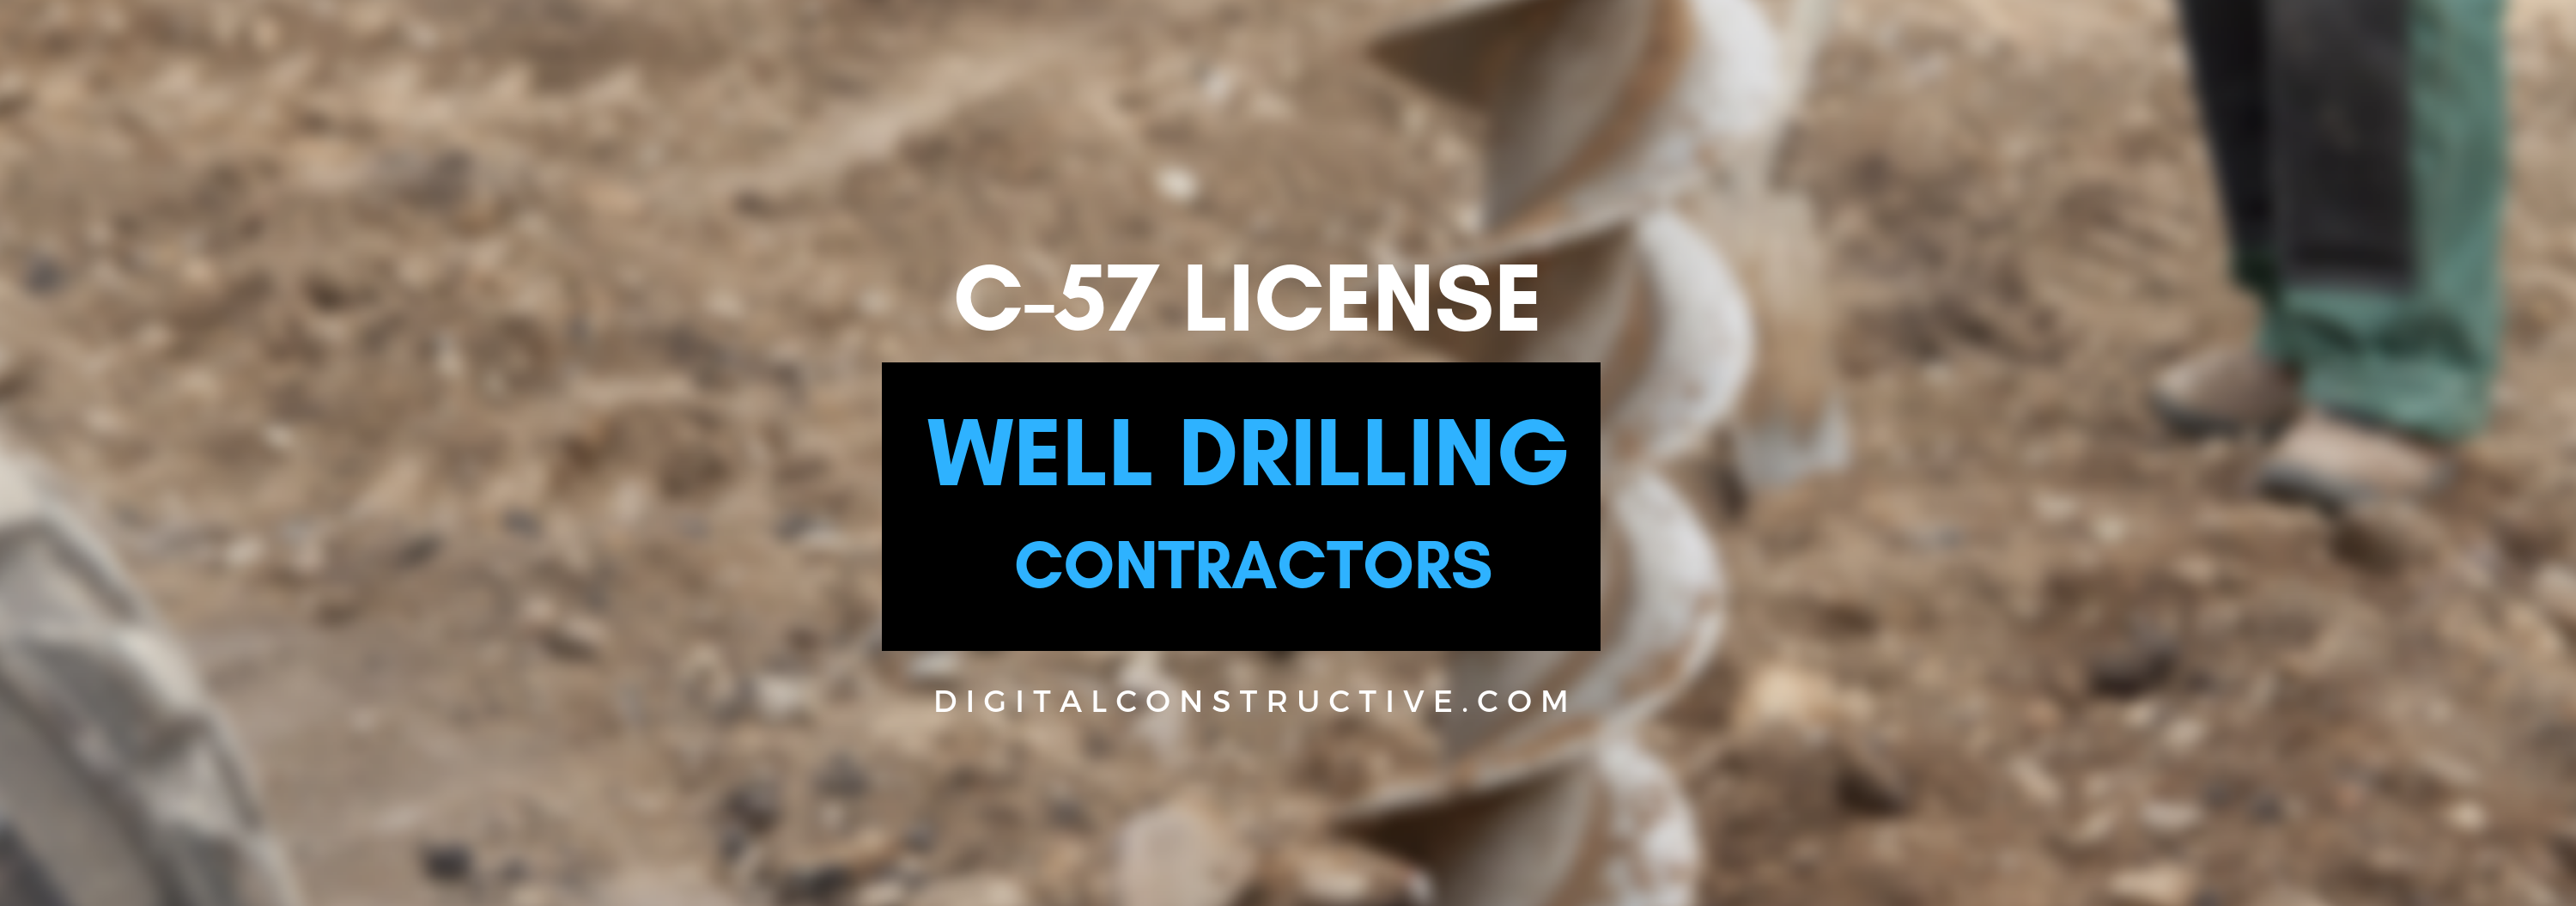 C 57 License Well Drilling Contractor Digital Constructive